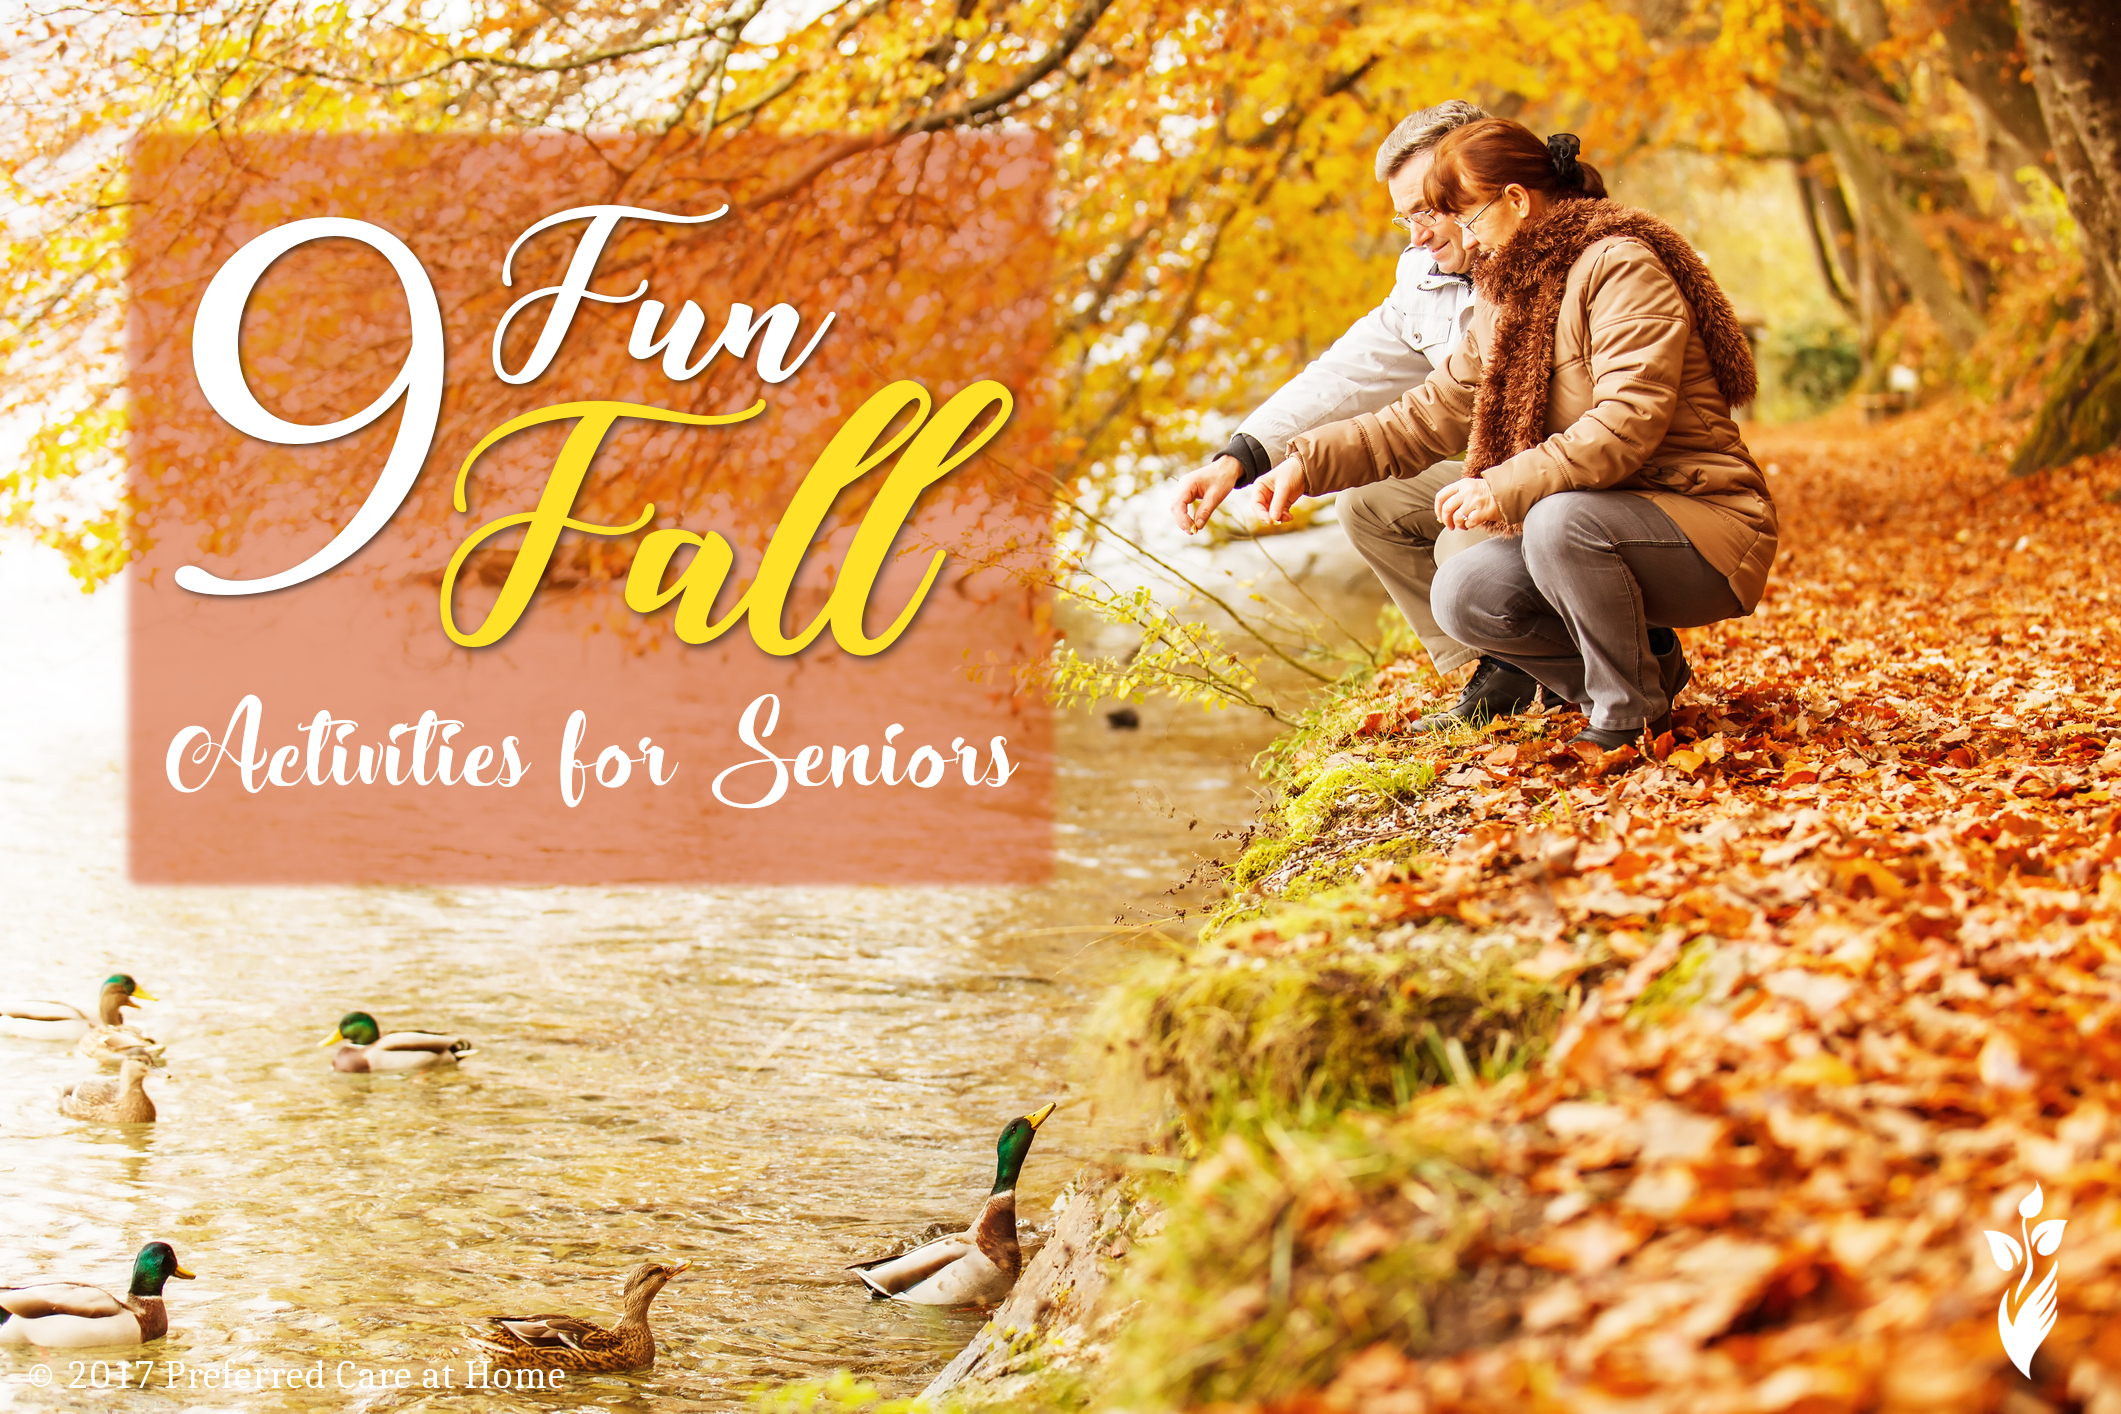 9 Senior Activities for the Fall Season